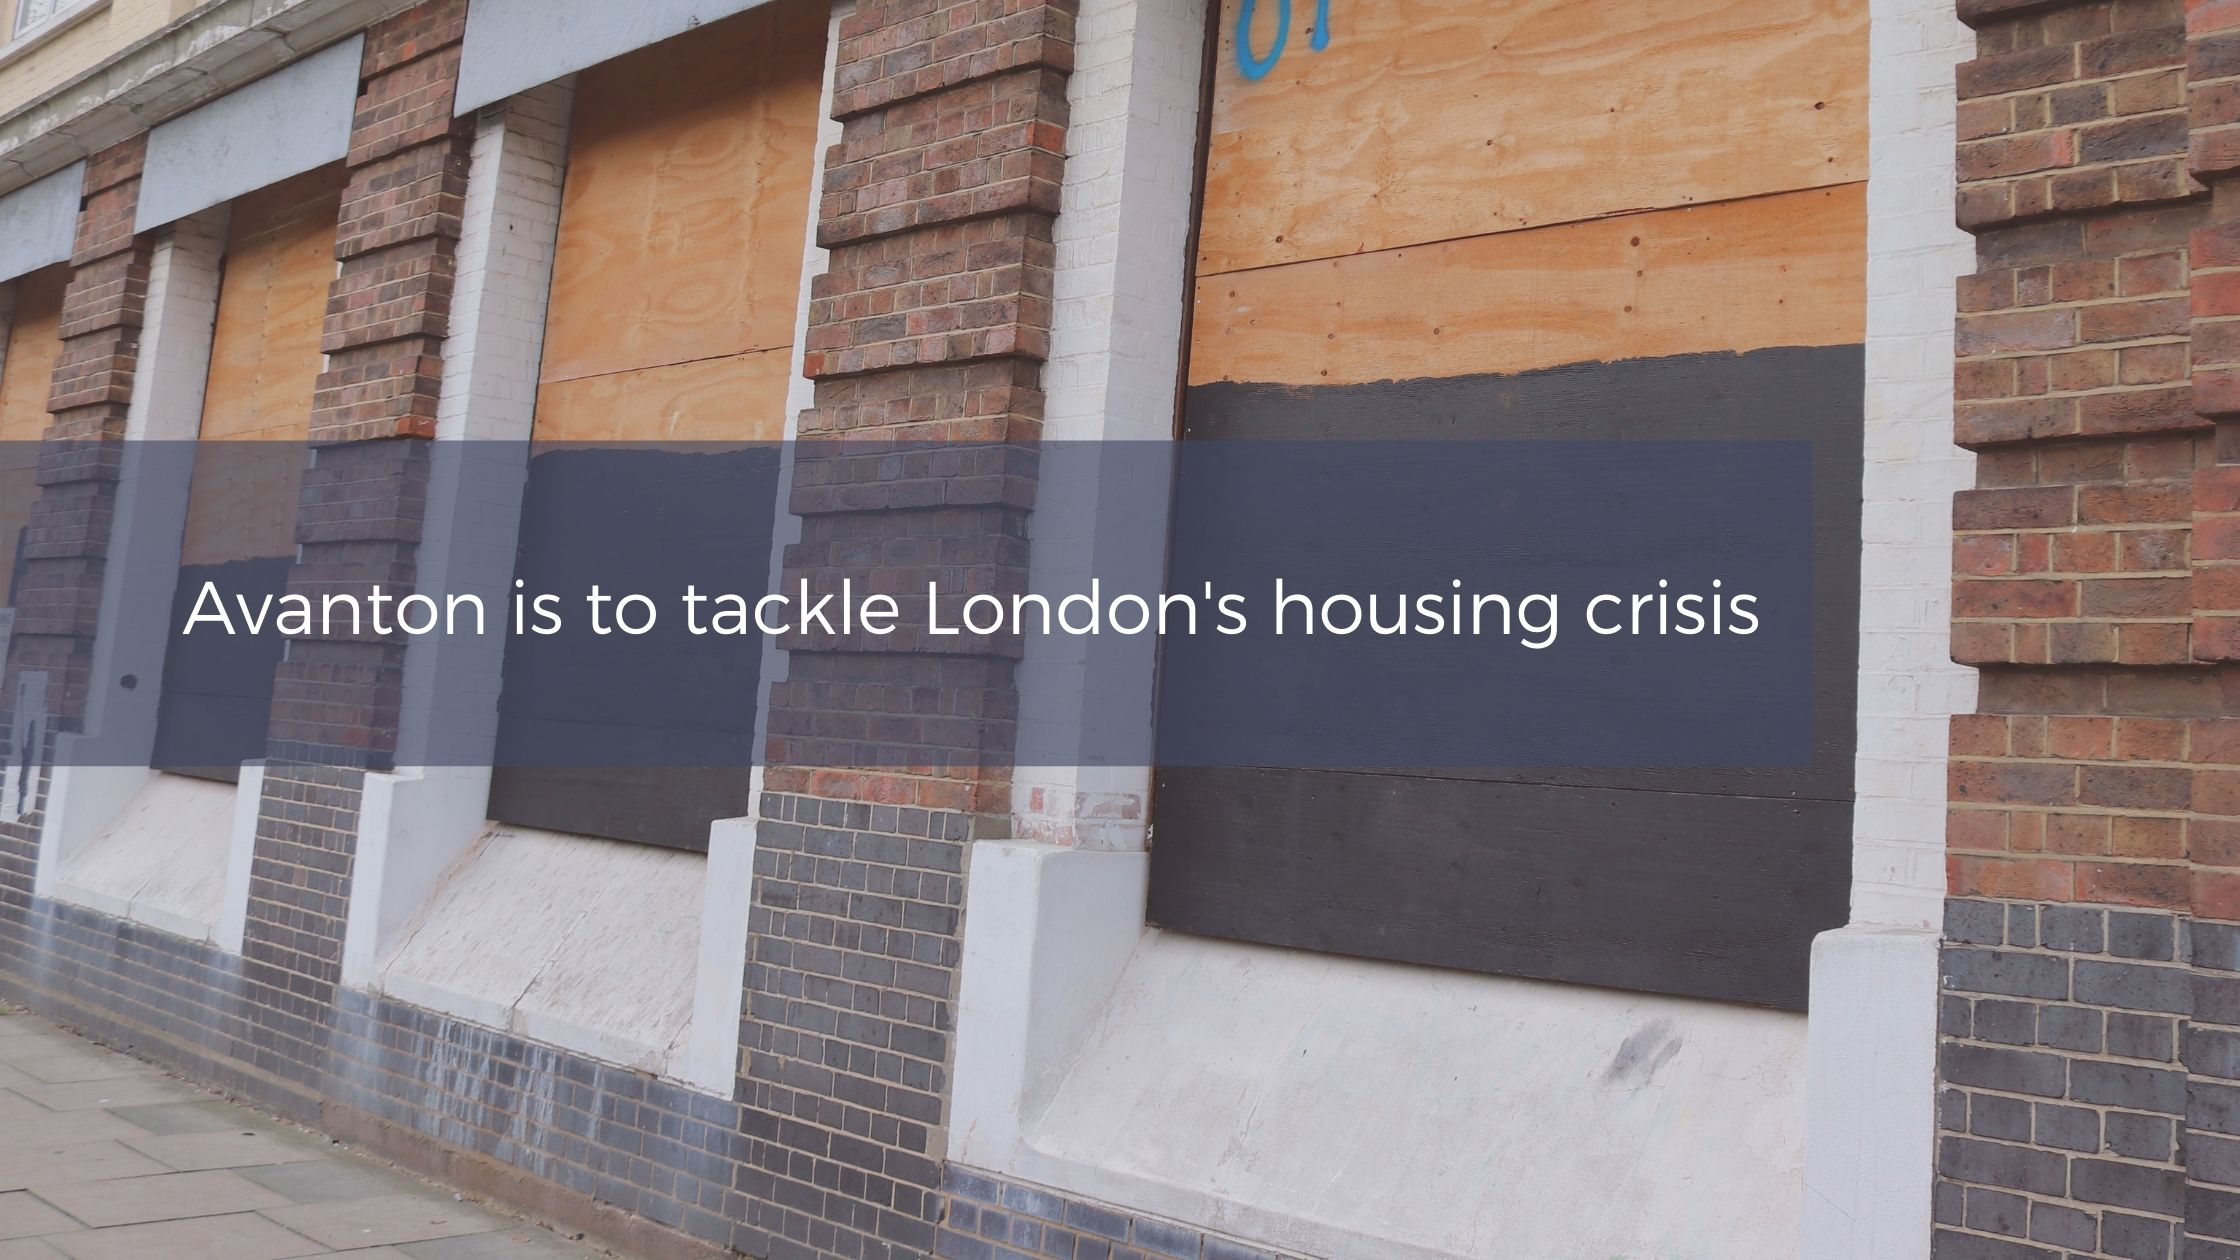 Avanton is to tackle London's housing crisis